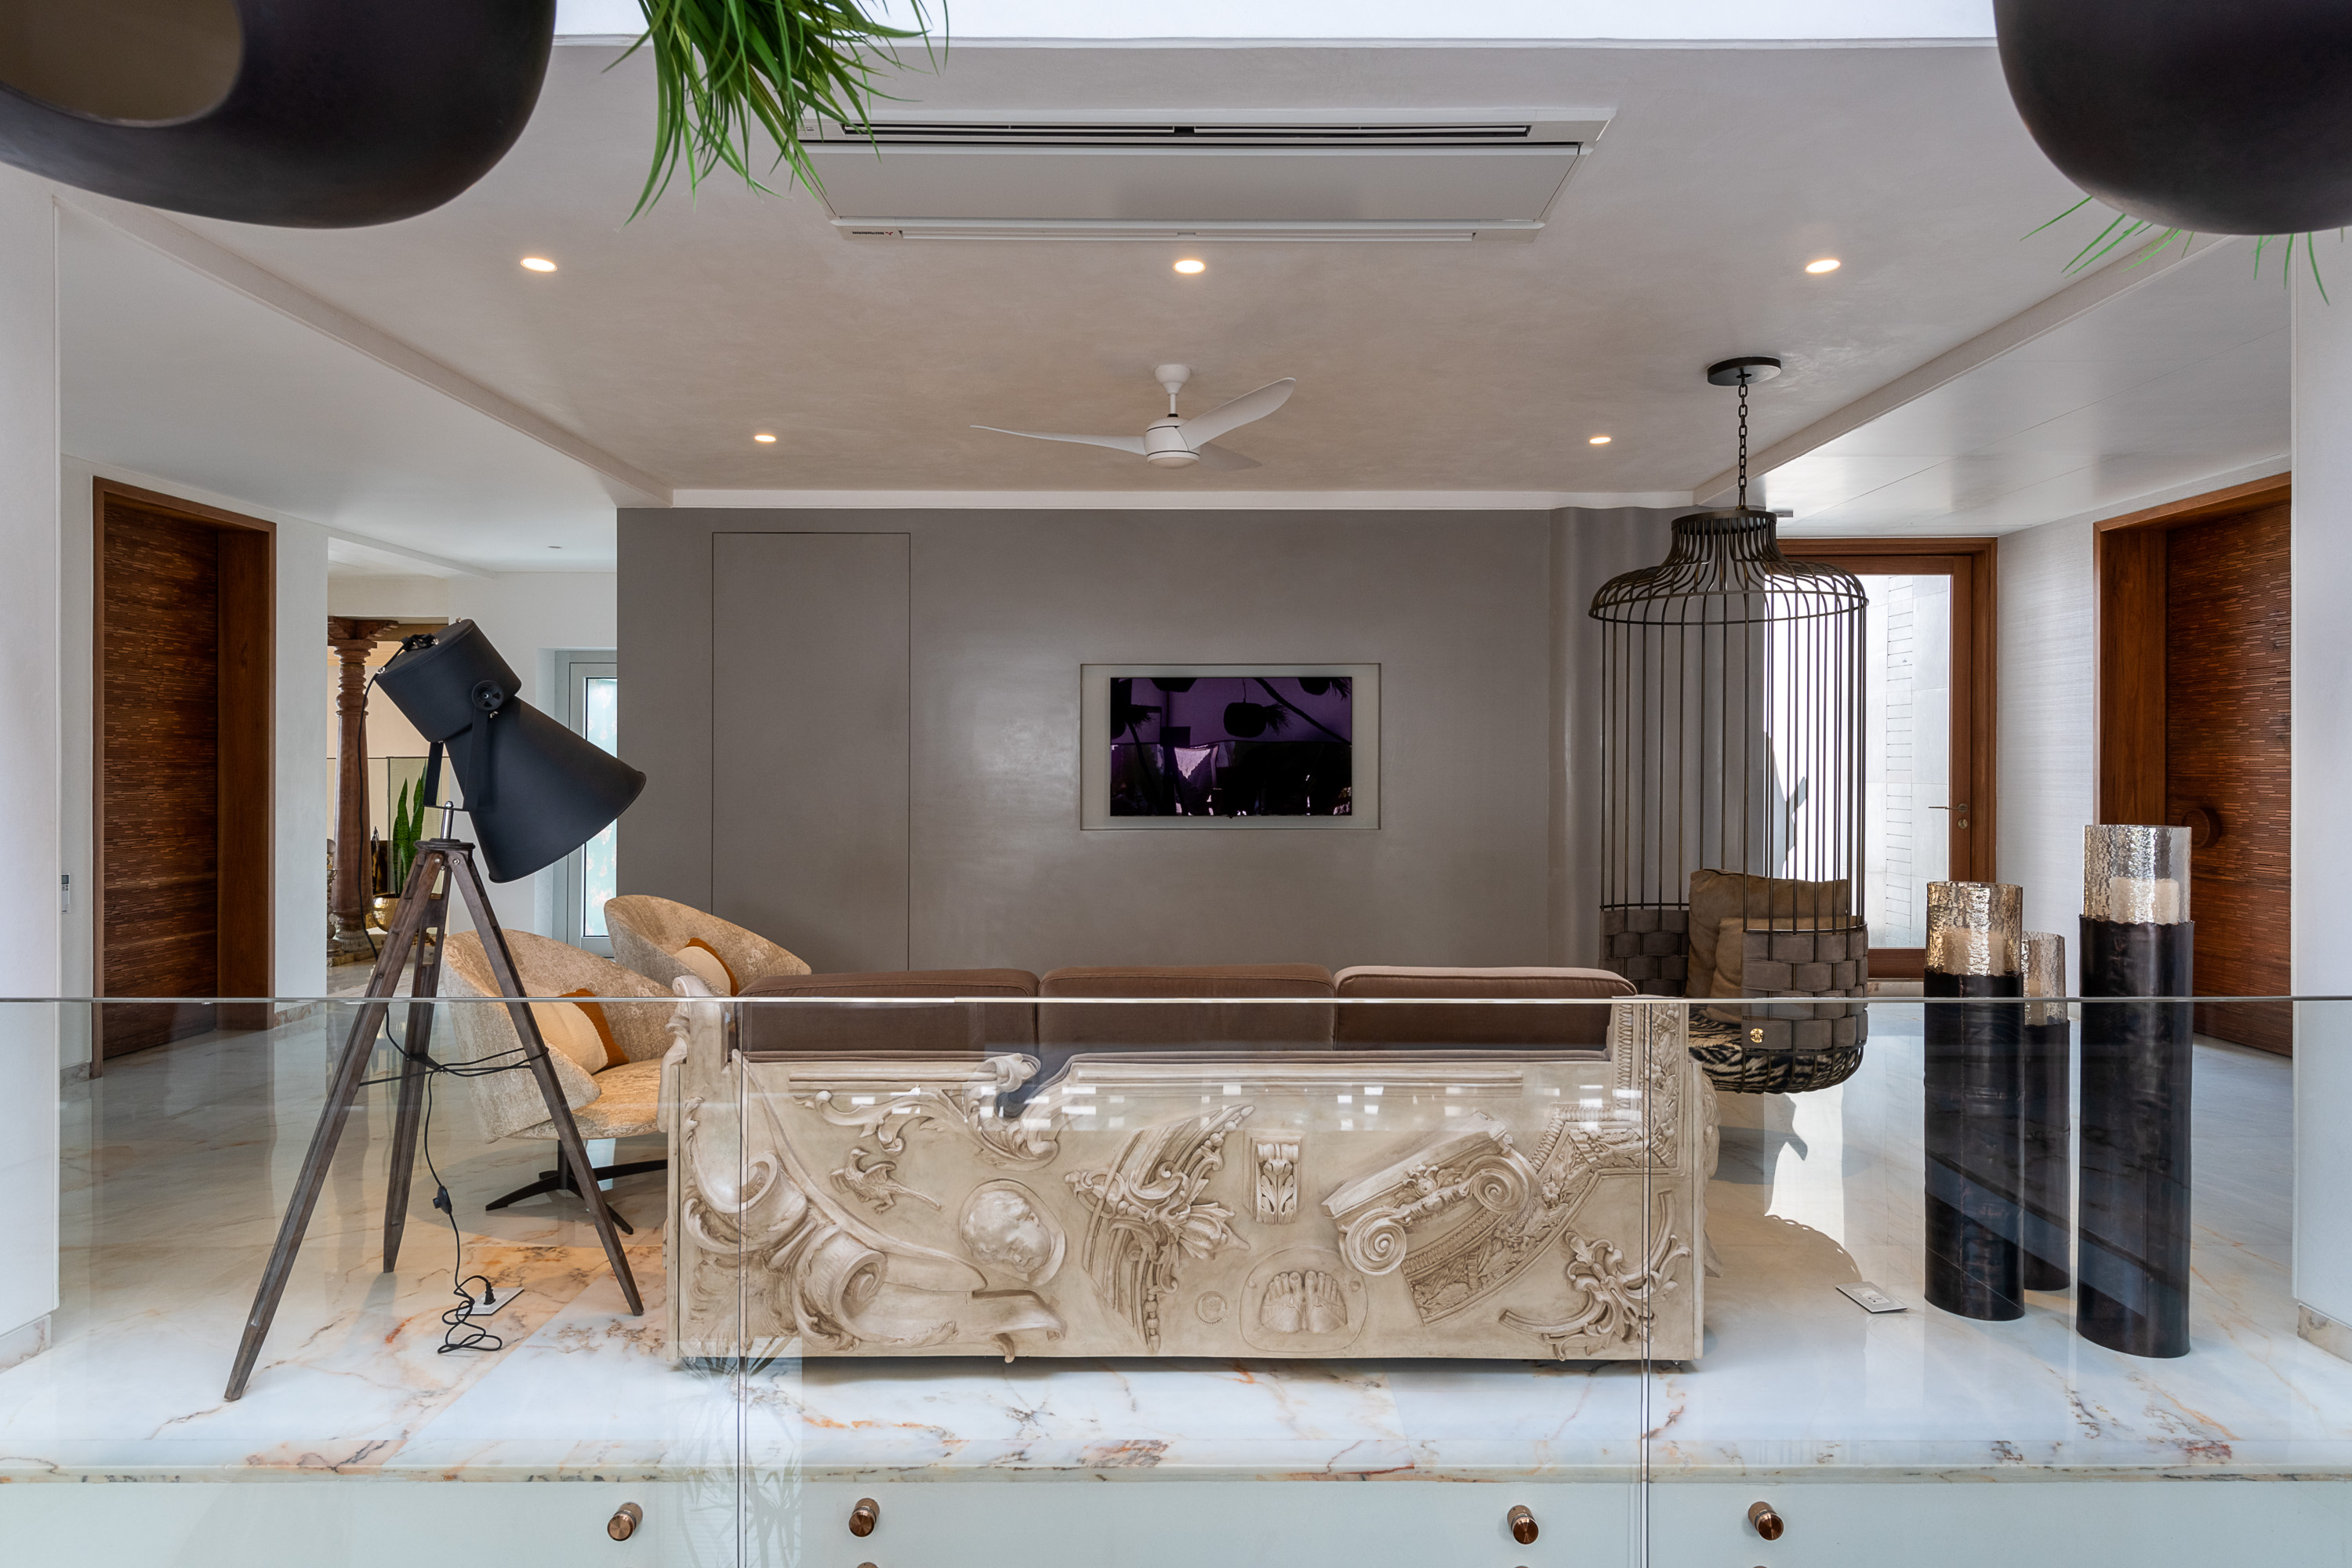 Sustainability Meets Luxury In This Private Residence by NA Architects (15) na architects Sustainability Meets Luxury In This Private Residence by NA Architects Sustainability Meets Luxury In This Private Residence by NA Architects 15